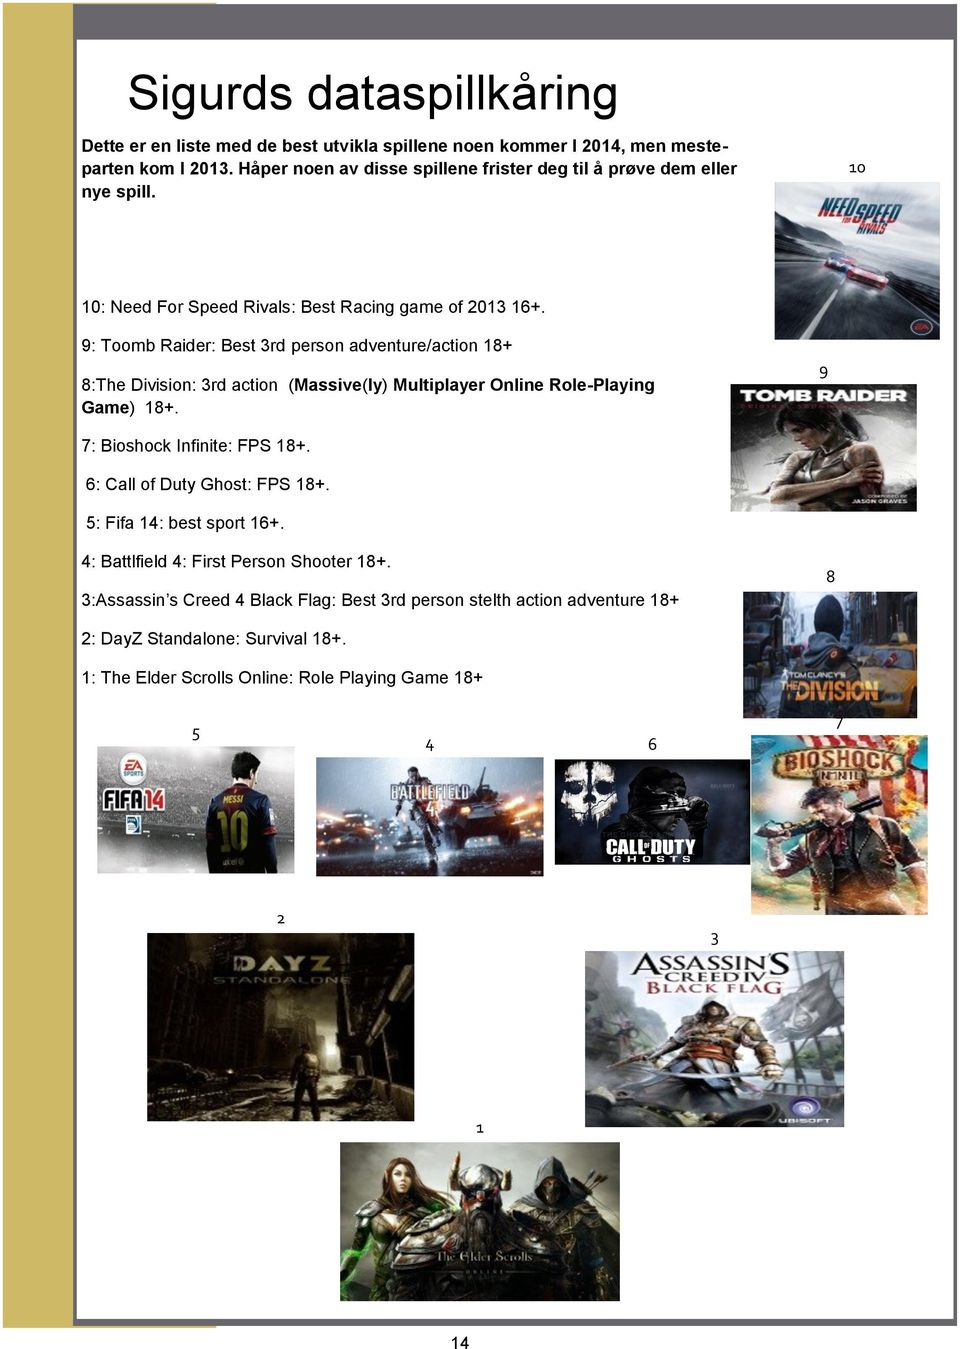 9: Toomb Raider: Best 3rd person adventure/action 18+ 8:The Division: 3rd action (Massive(ly) Multiplayer Online Role-Playing Game) 18+. 9 7: Bioshock Infinite: FPS 18+.